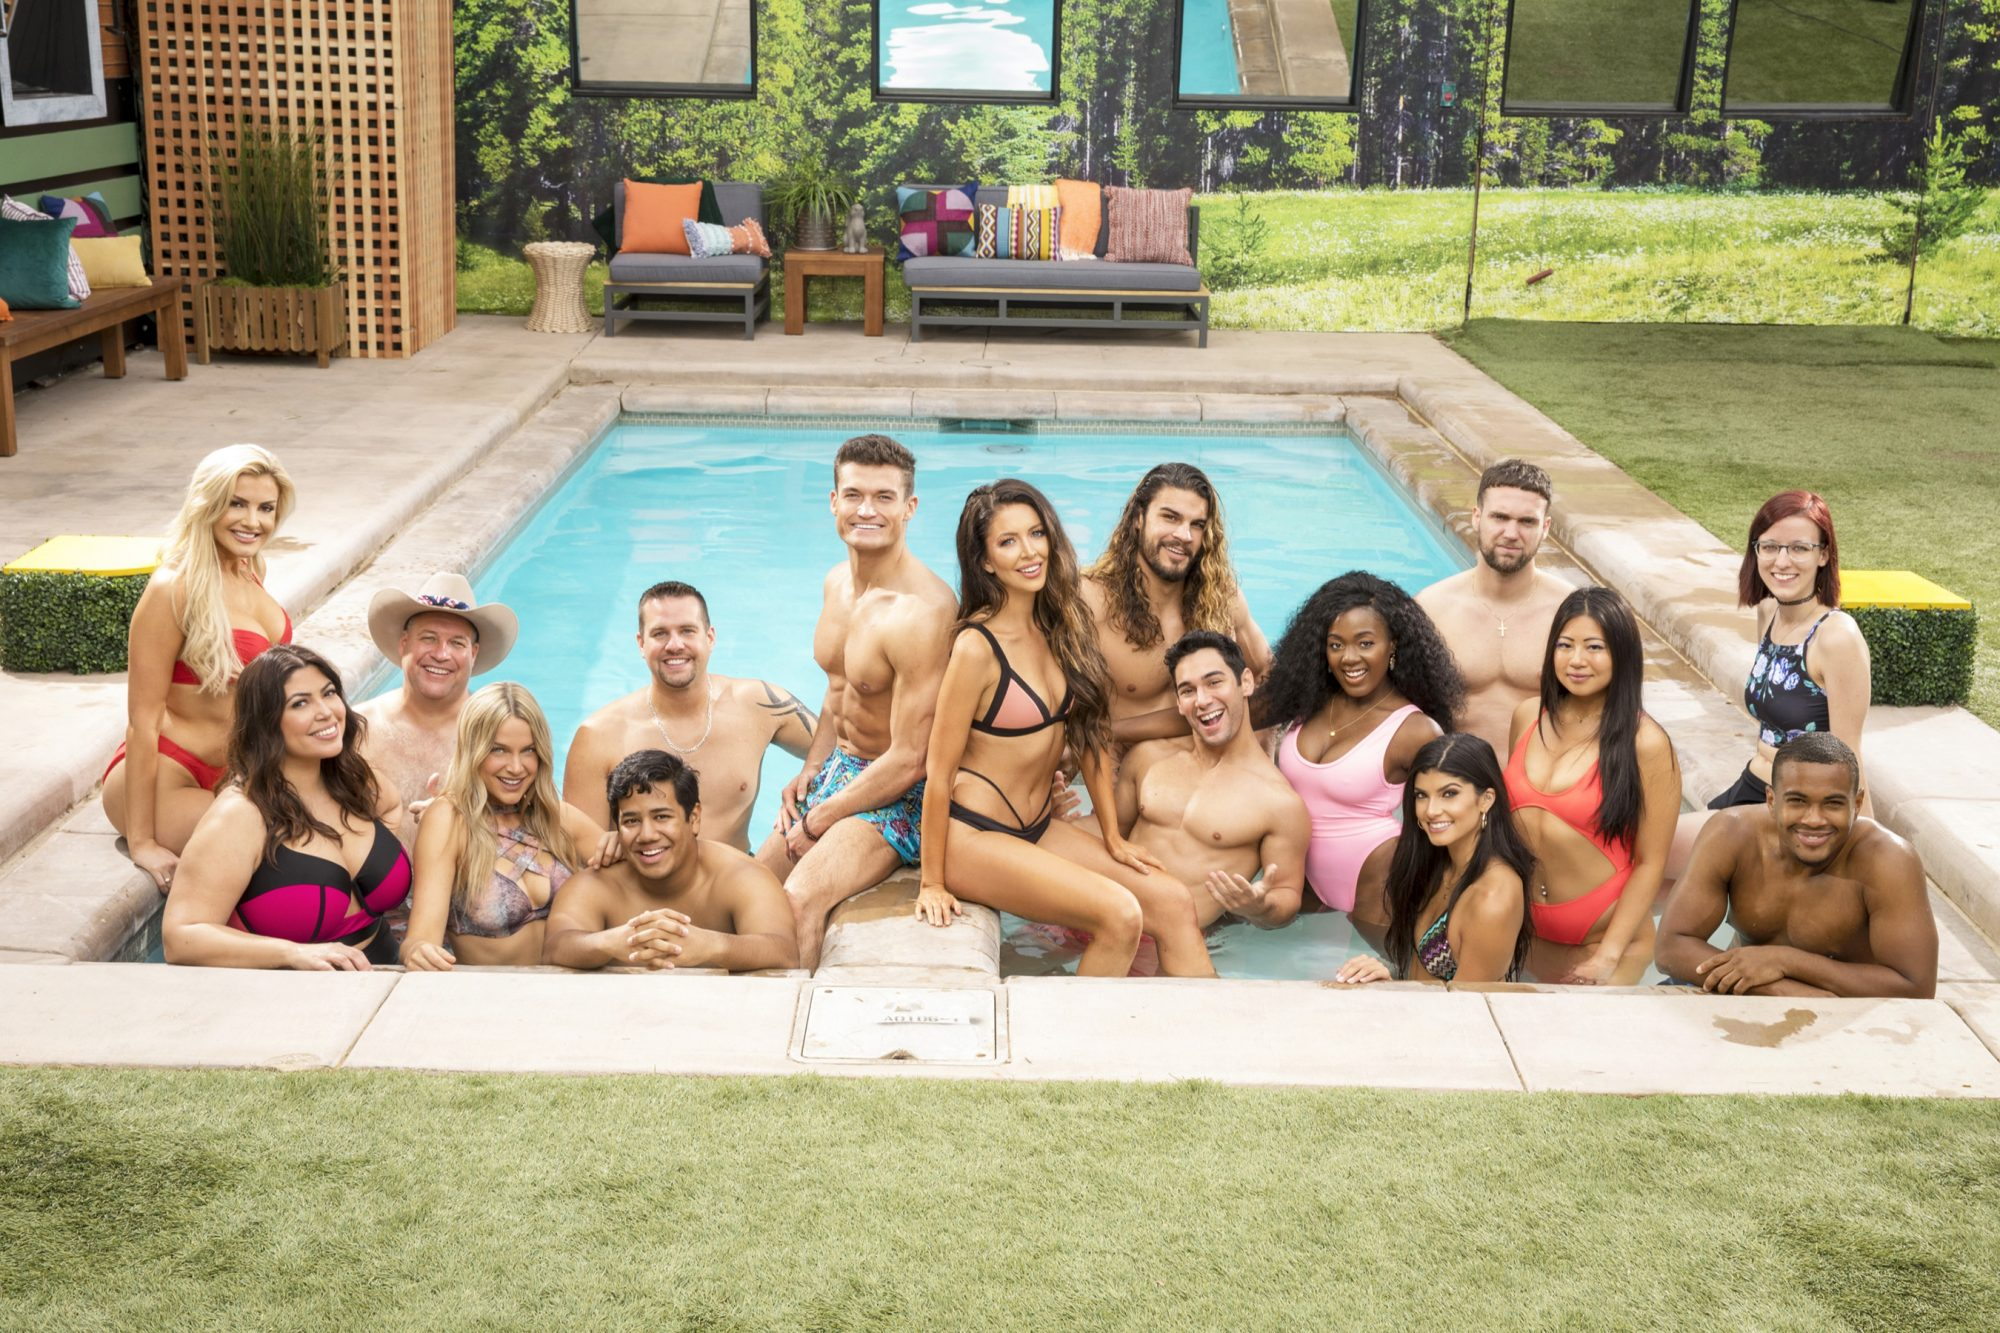 LOS ANGELES - JUNE 22: Houseguest of Big Brother 21 --L-R : Jessica Milagros, Christie Murphy, Ovi Kabir,Analyse Talvera, David, Alexander; L-R second row: Kathryn Dunn, Cliff Hogg, Sam Smith, Jackson Michie, Holly Alexander,Jack Matthews, Tommy Bracco, Kemi Fakunle, Nick Macaroni, Isabella Wang, Nicole Anthony. BIG BROTHER's two-night premiere event airing Tuesday, June 25 and Wednesday, June 26 (8:00 Ð 9:00 PM, ET/PT), on the CBS Television Network. Following the two-night premiere, BIG BROTHER will be broadcast Sunday, June 30 (8:00-9:00 PM, ET/PT) and Tuesday, July 2 (8:00-9:00 PM, ET/PT). The first live eviction airs Wednesday, July 3. As of Wednesday, July 10, the show moves to its regular schedule of Wednesdays (9:00-10:00 PM, ET/PT), Thursdays, featuring the live evictions (9:00-10:00 PM, LIVE ET/Delayed PT) and Sundays (8:00-9:00 PM, ET/PT). (Photo by Monty Brinton/CBS via Getty Images)